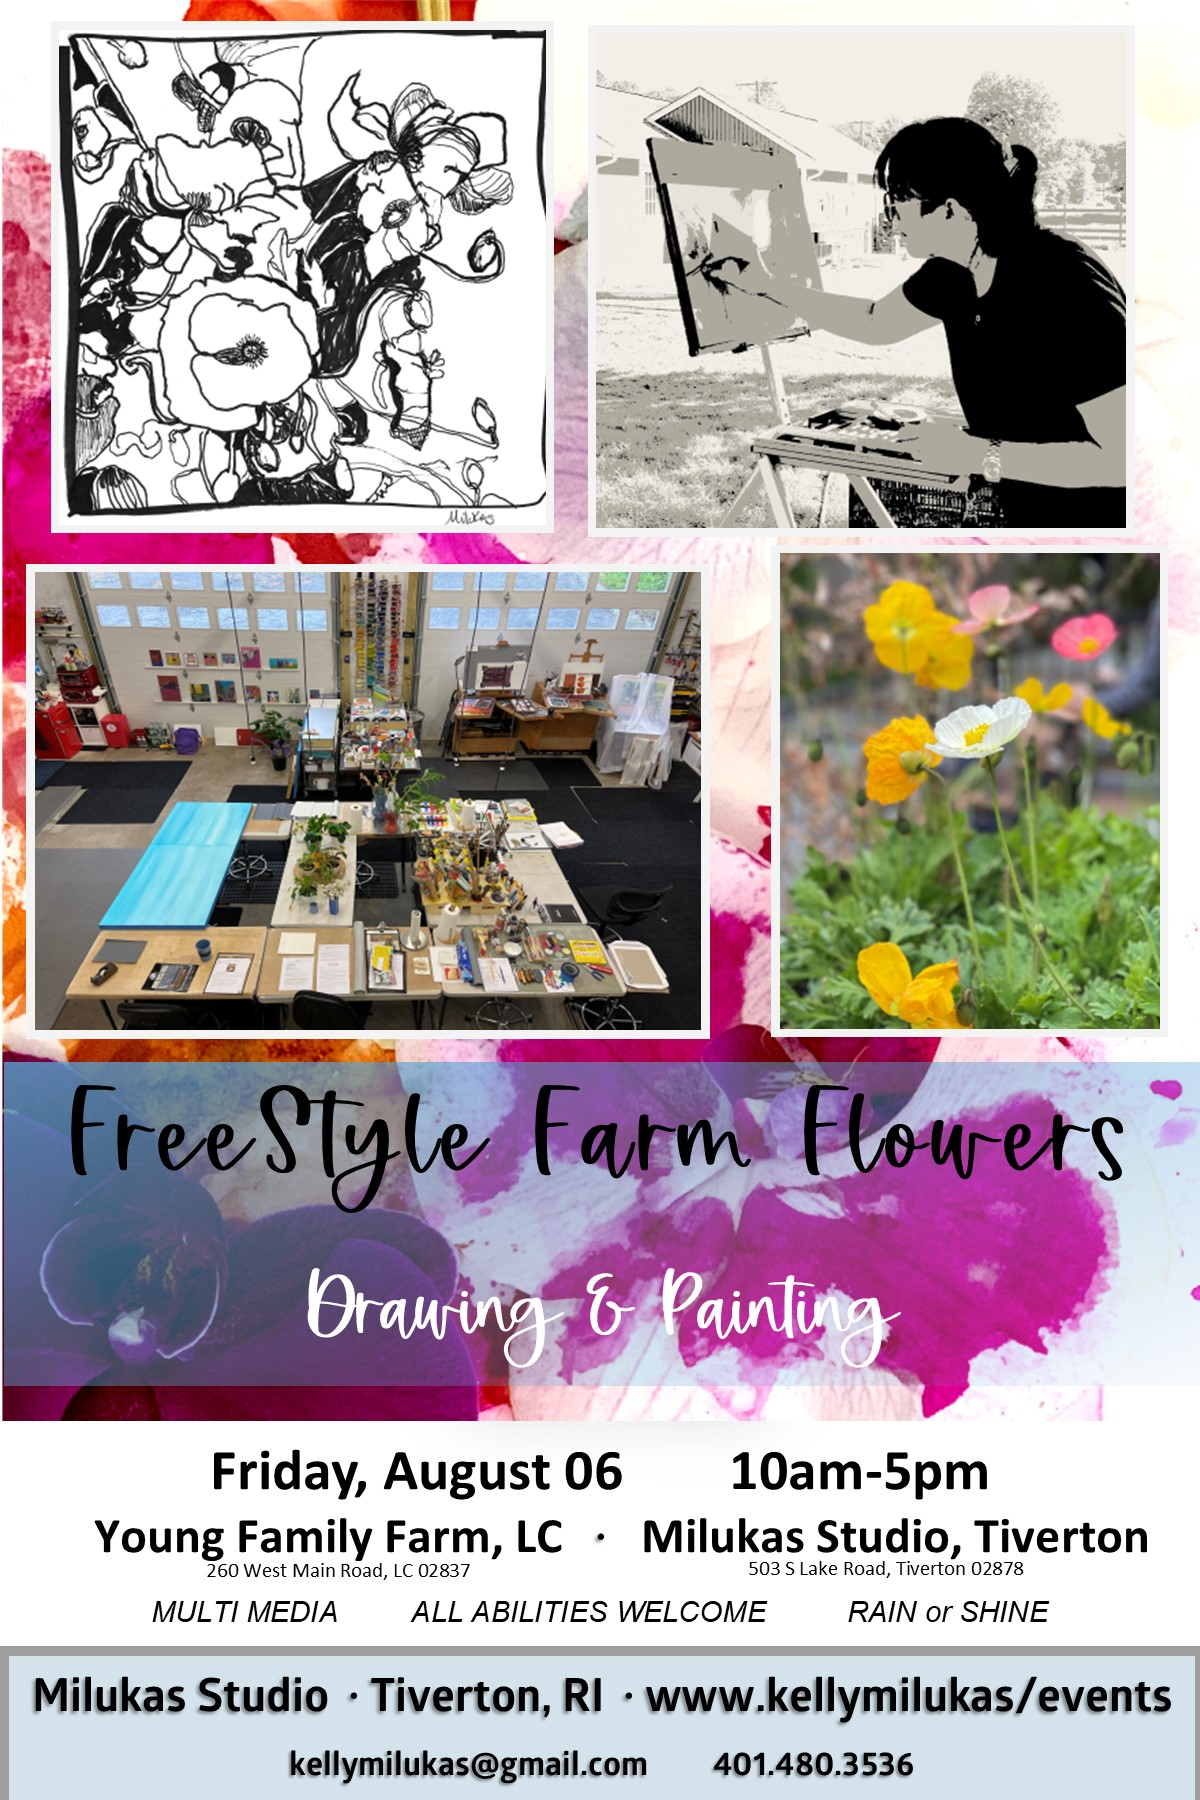 Freestyle Farm Flowers Friday, August 06, 2021